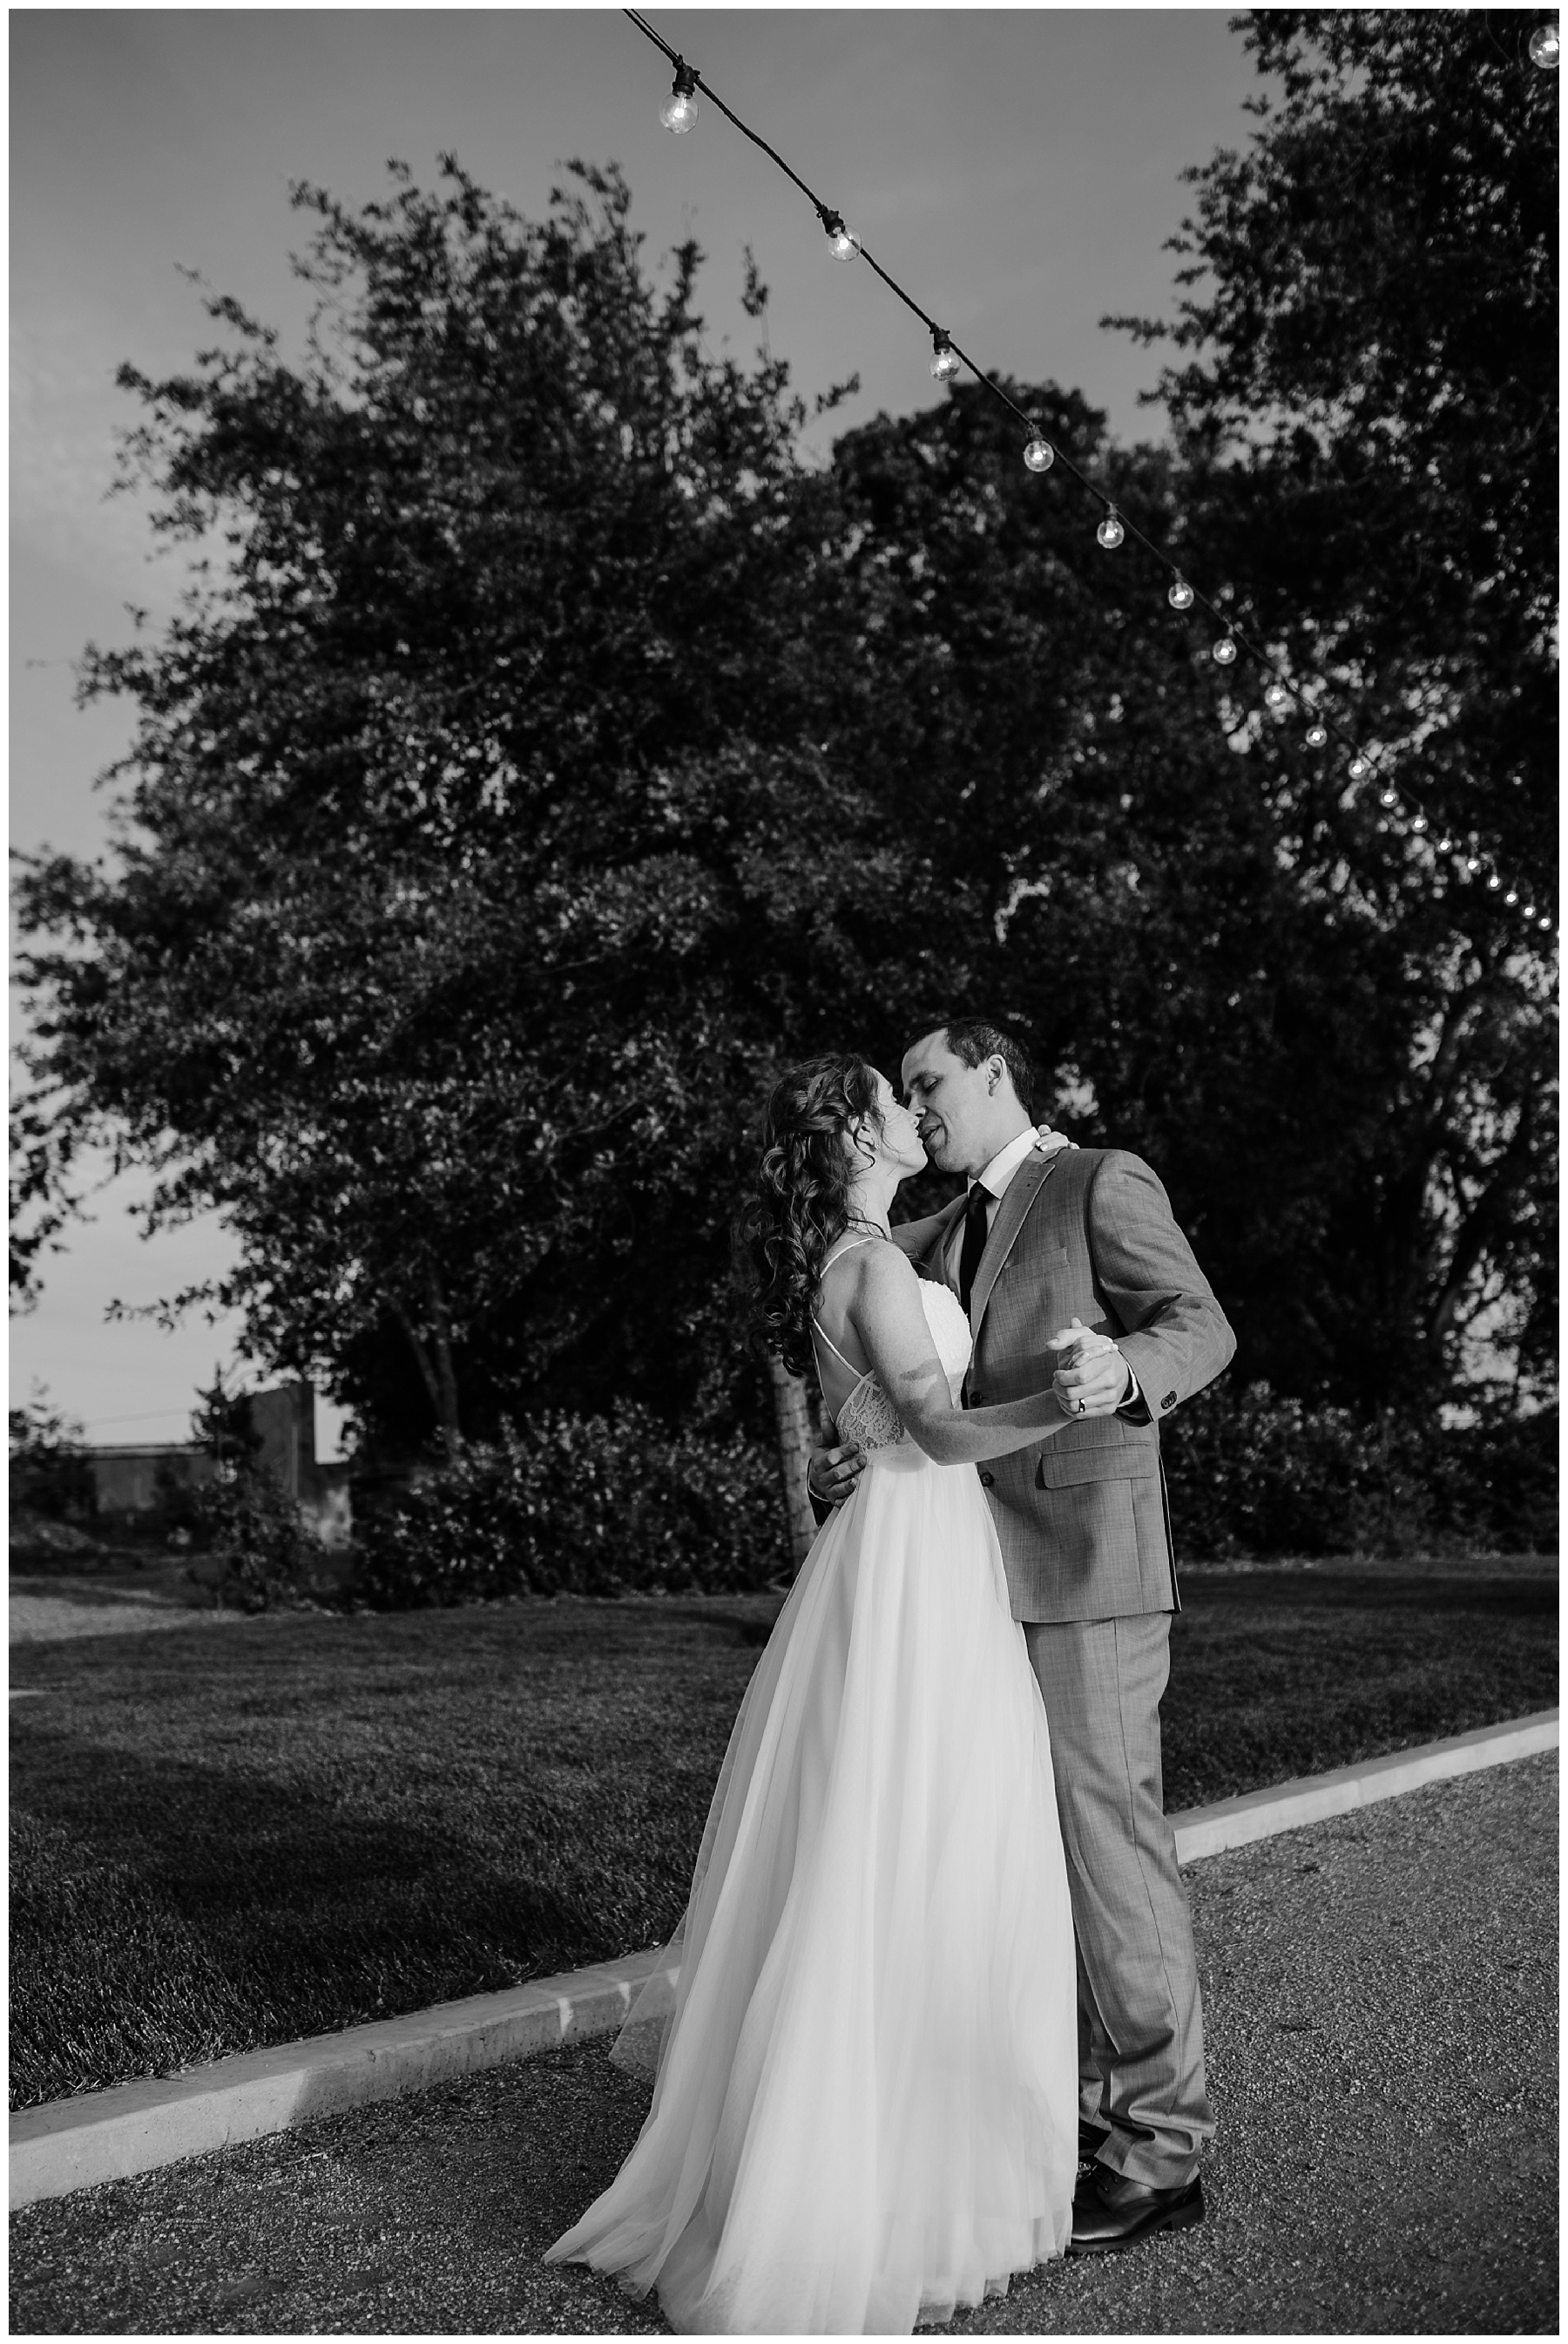 julietta winery black and white bride and groom